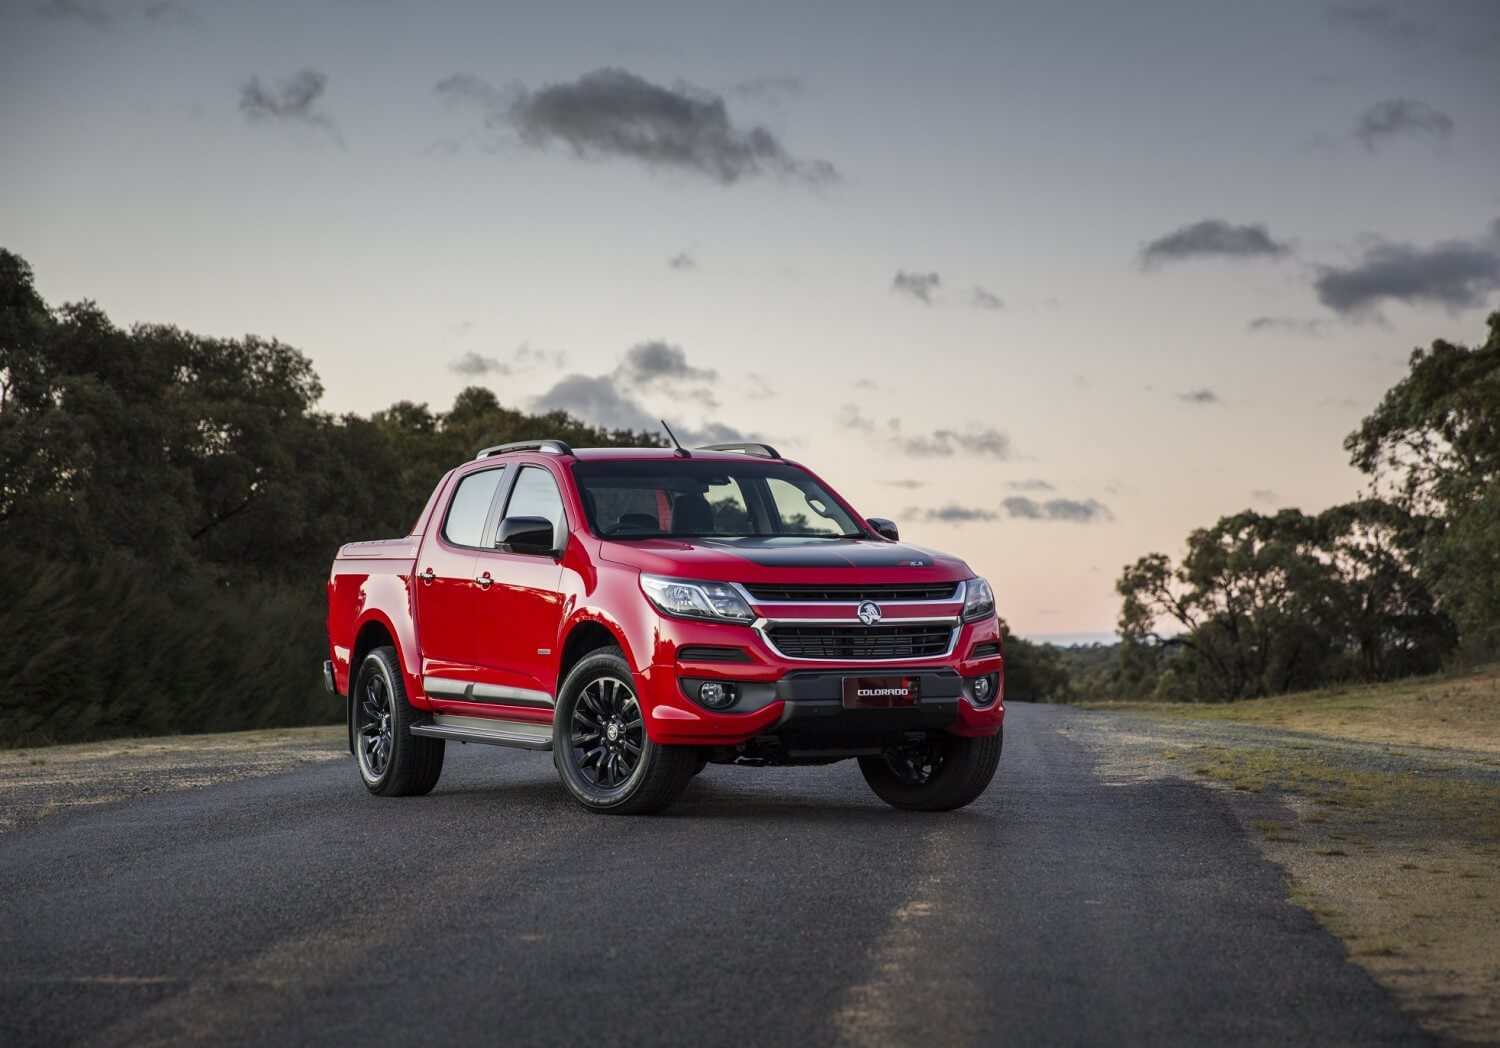 holden-unveils-new-high-tech-2017-colorado-02